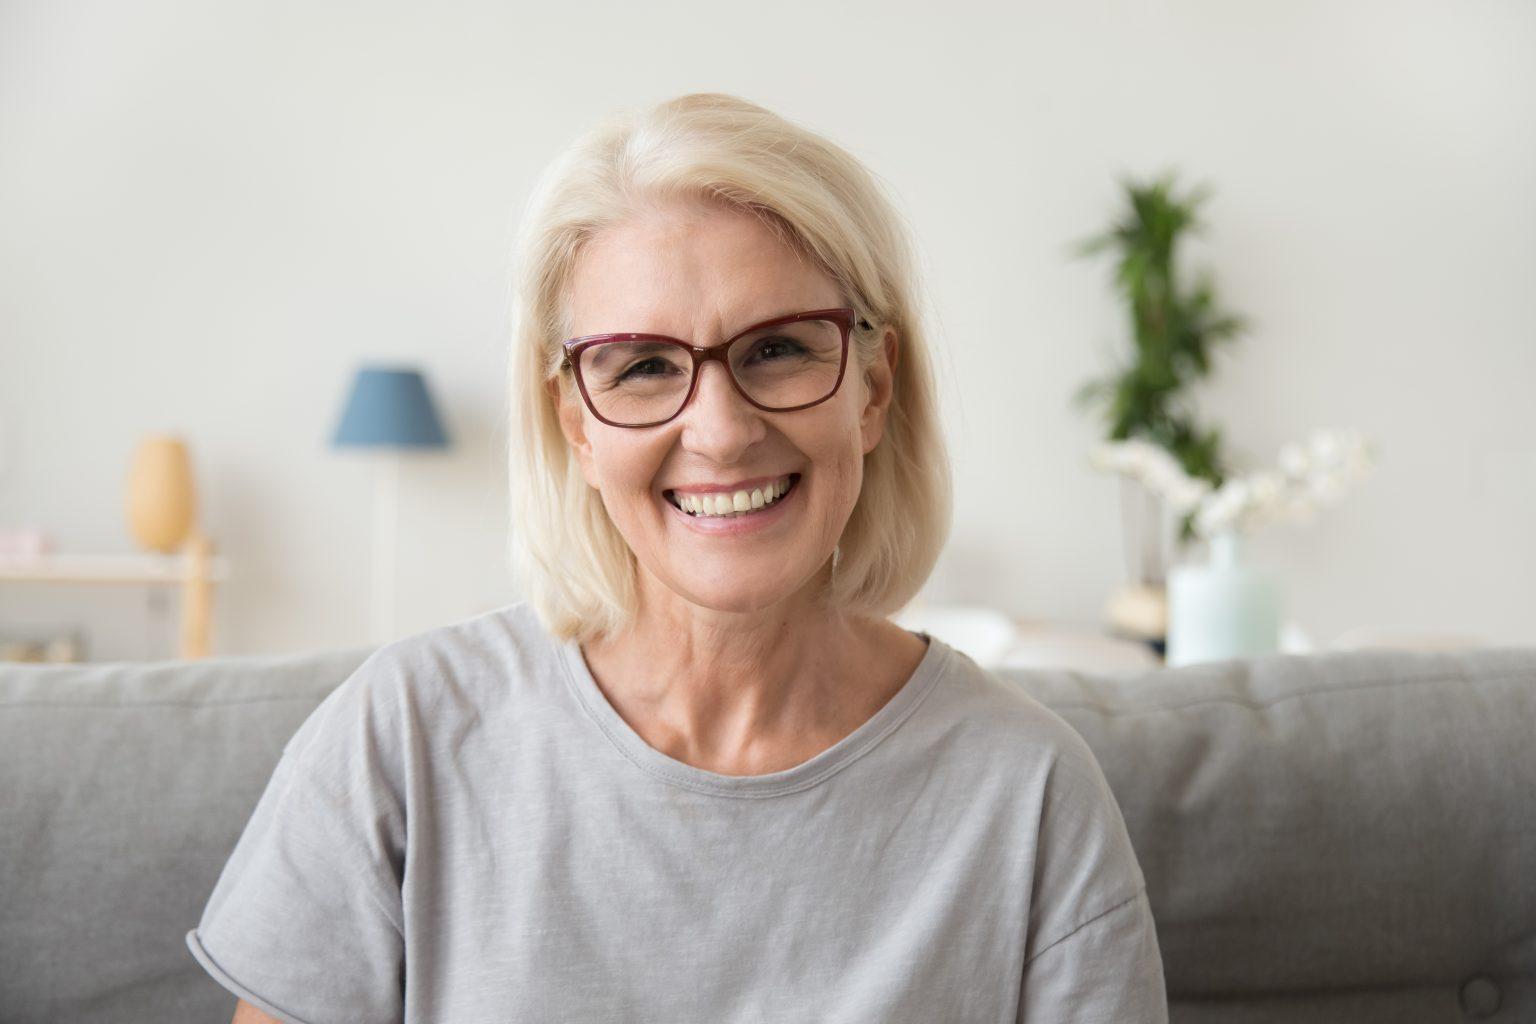 Smiling Middle Aged Mature Grey Haired Woman Looking At Camera